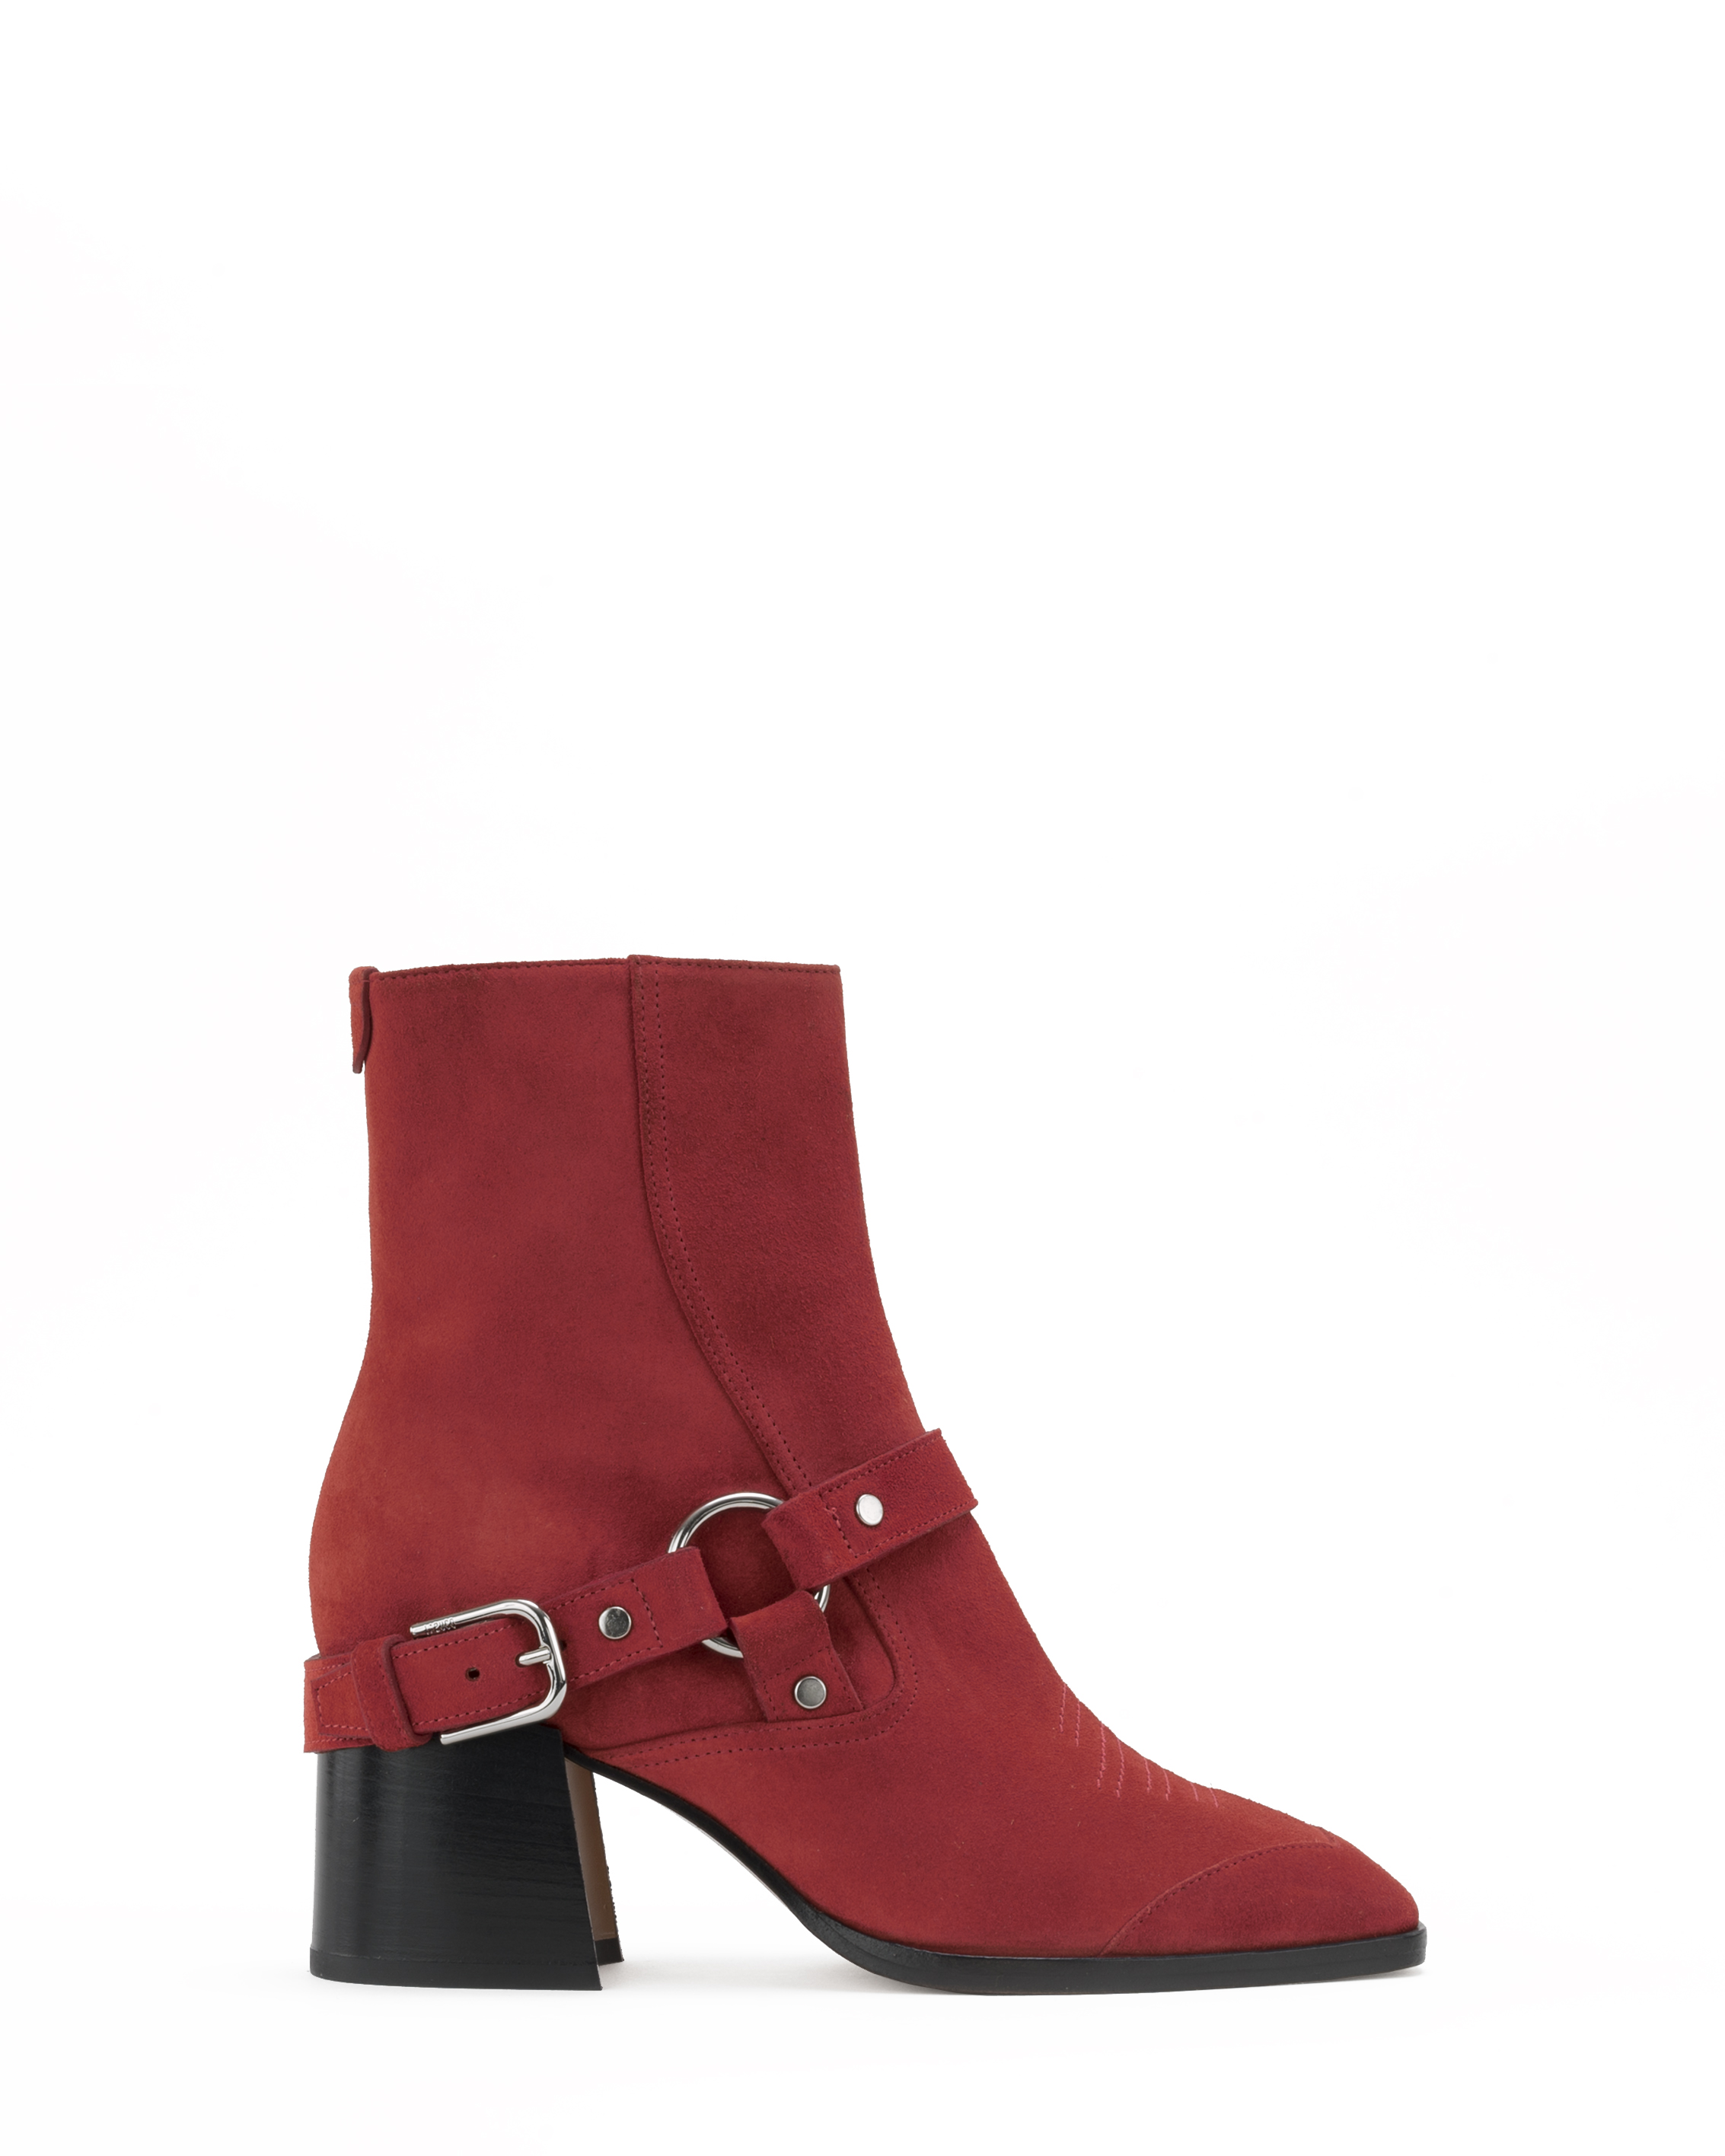 LABUCQ_June Harness Boot_Red Suede_$385.jpg